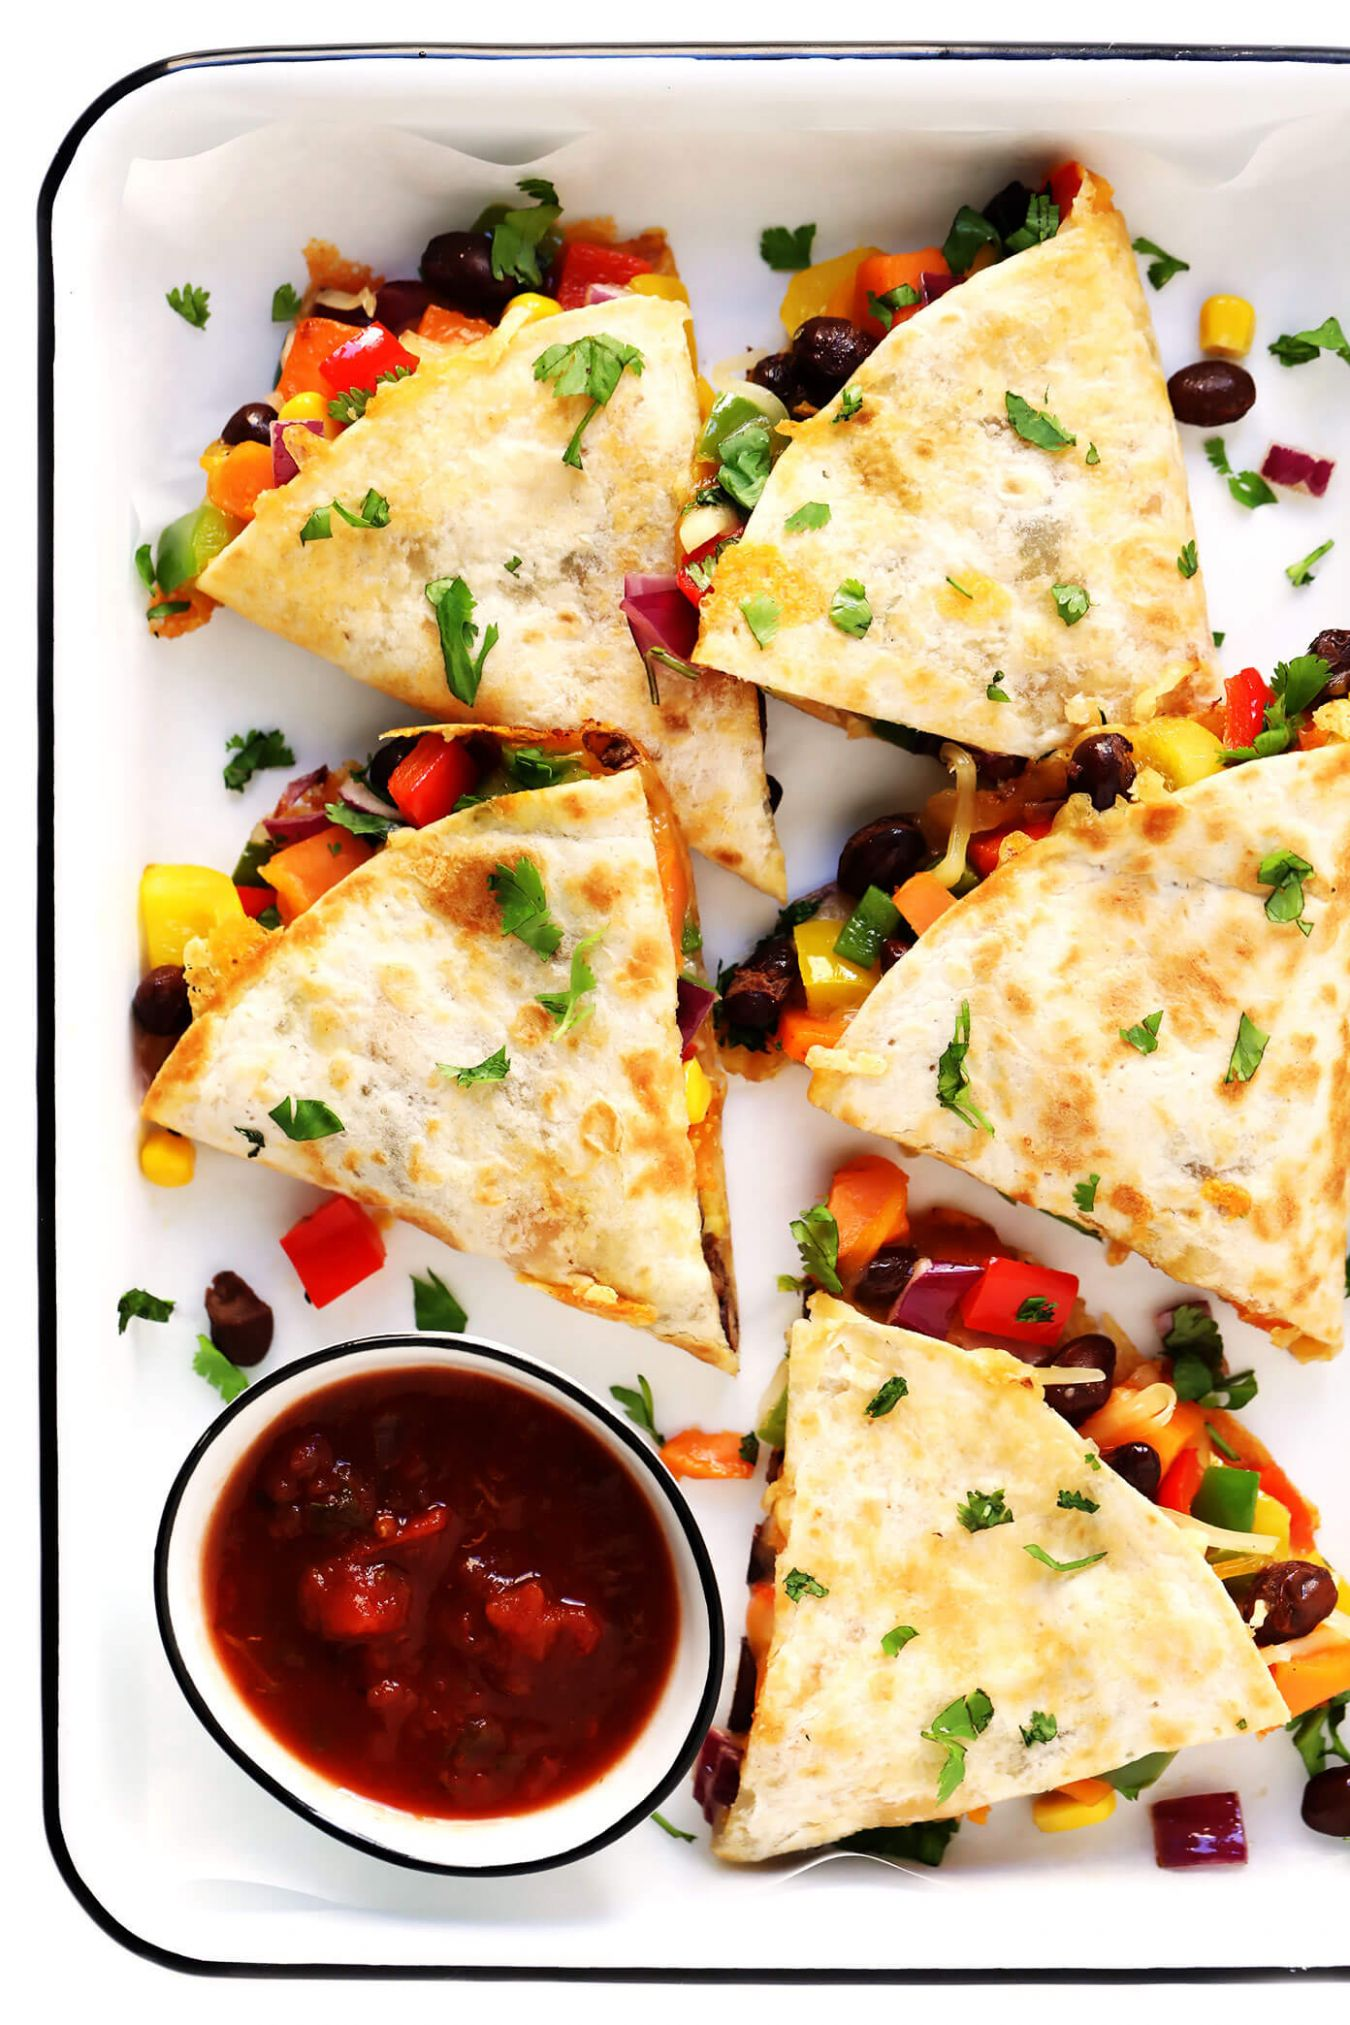 Easy Veggie Quesadillas - Vegetarian Recipes You Can Add Meat To